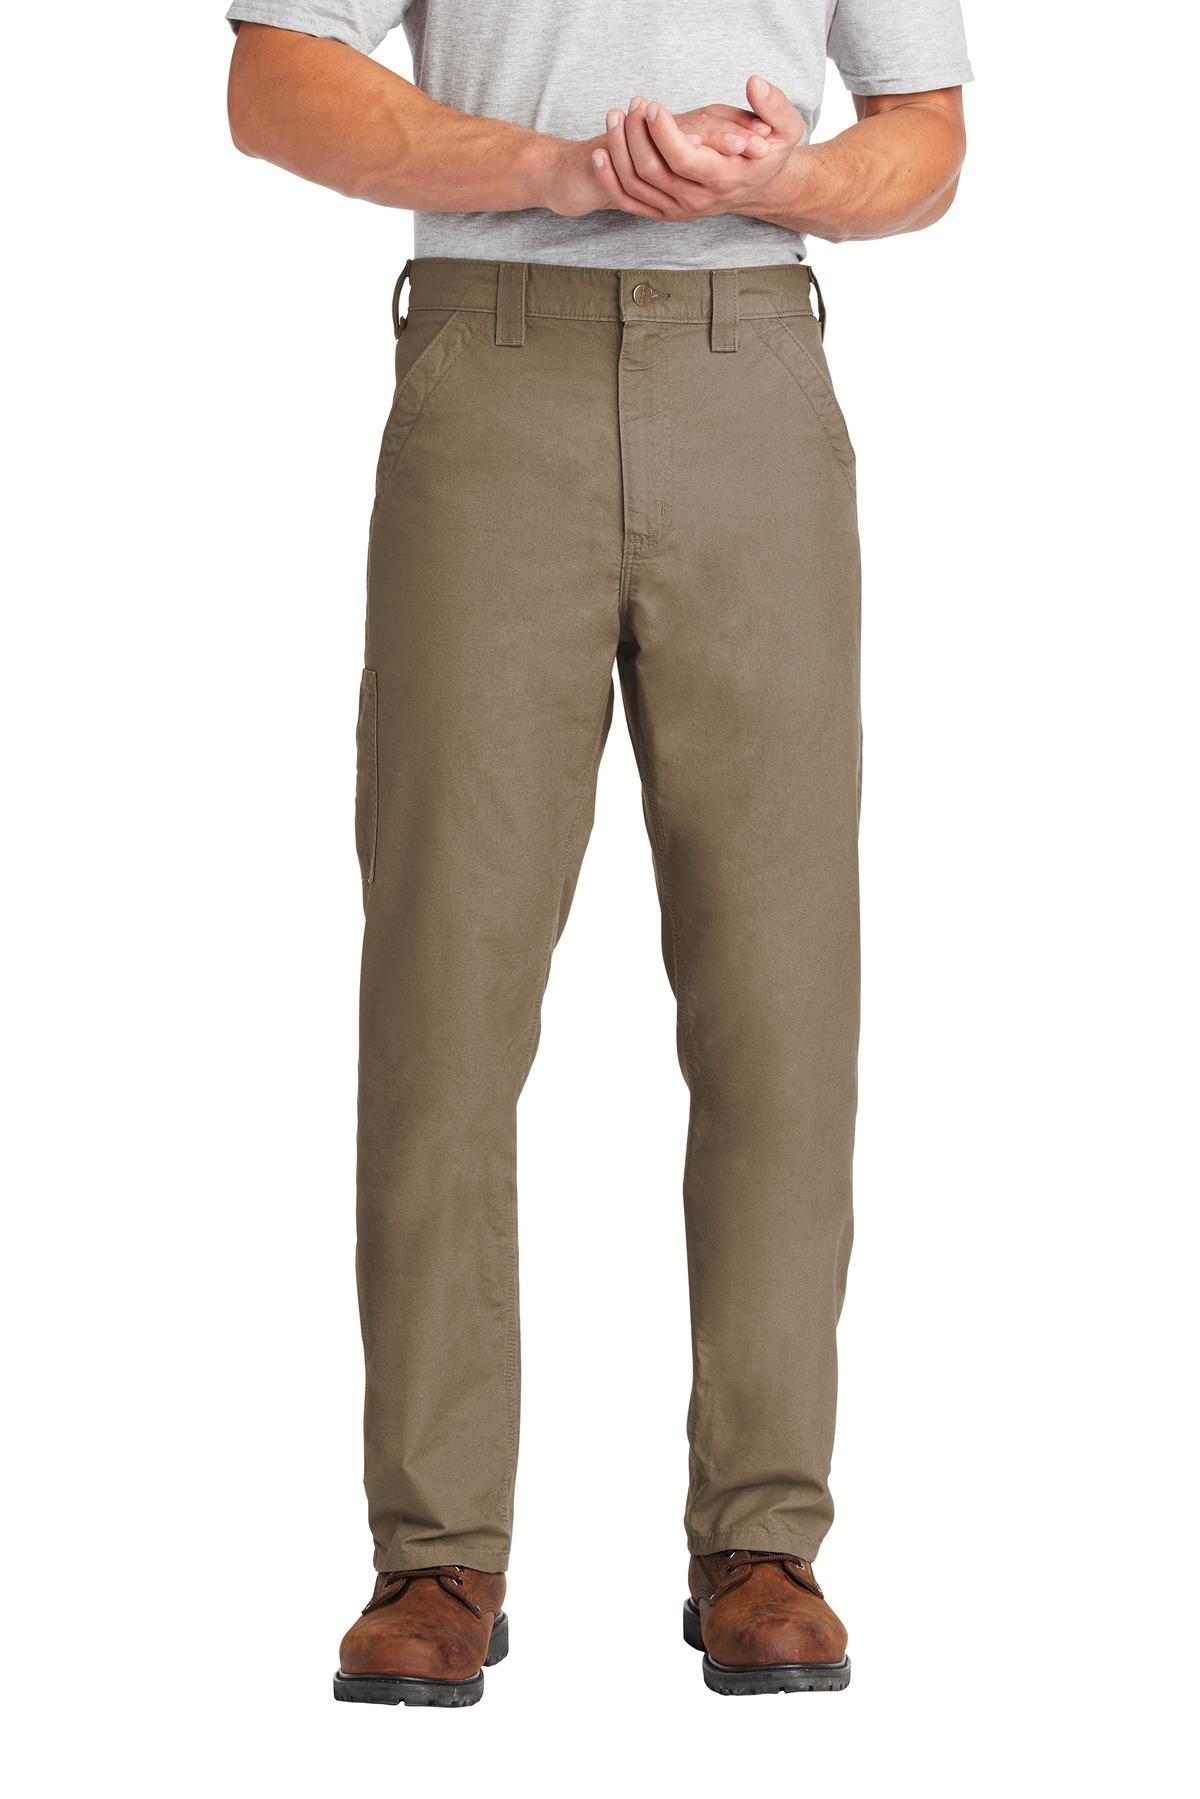 Carhartt  ®  Canvas Work Dungaree. CTB151 - Light Brown